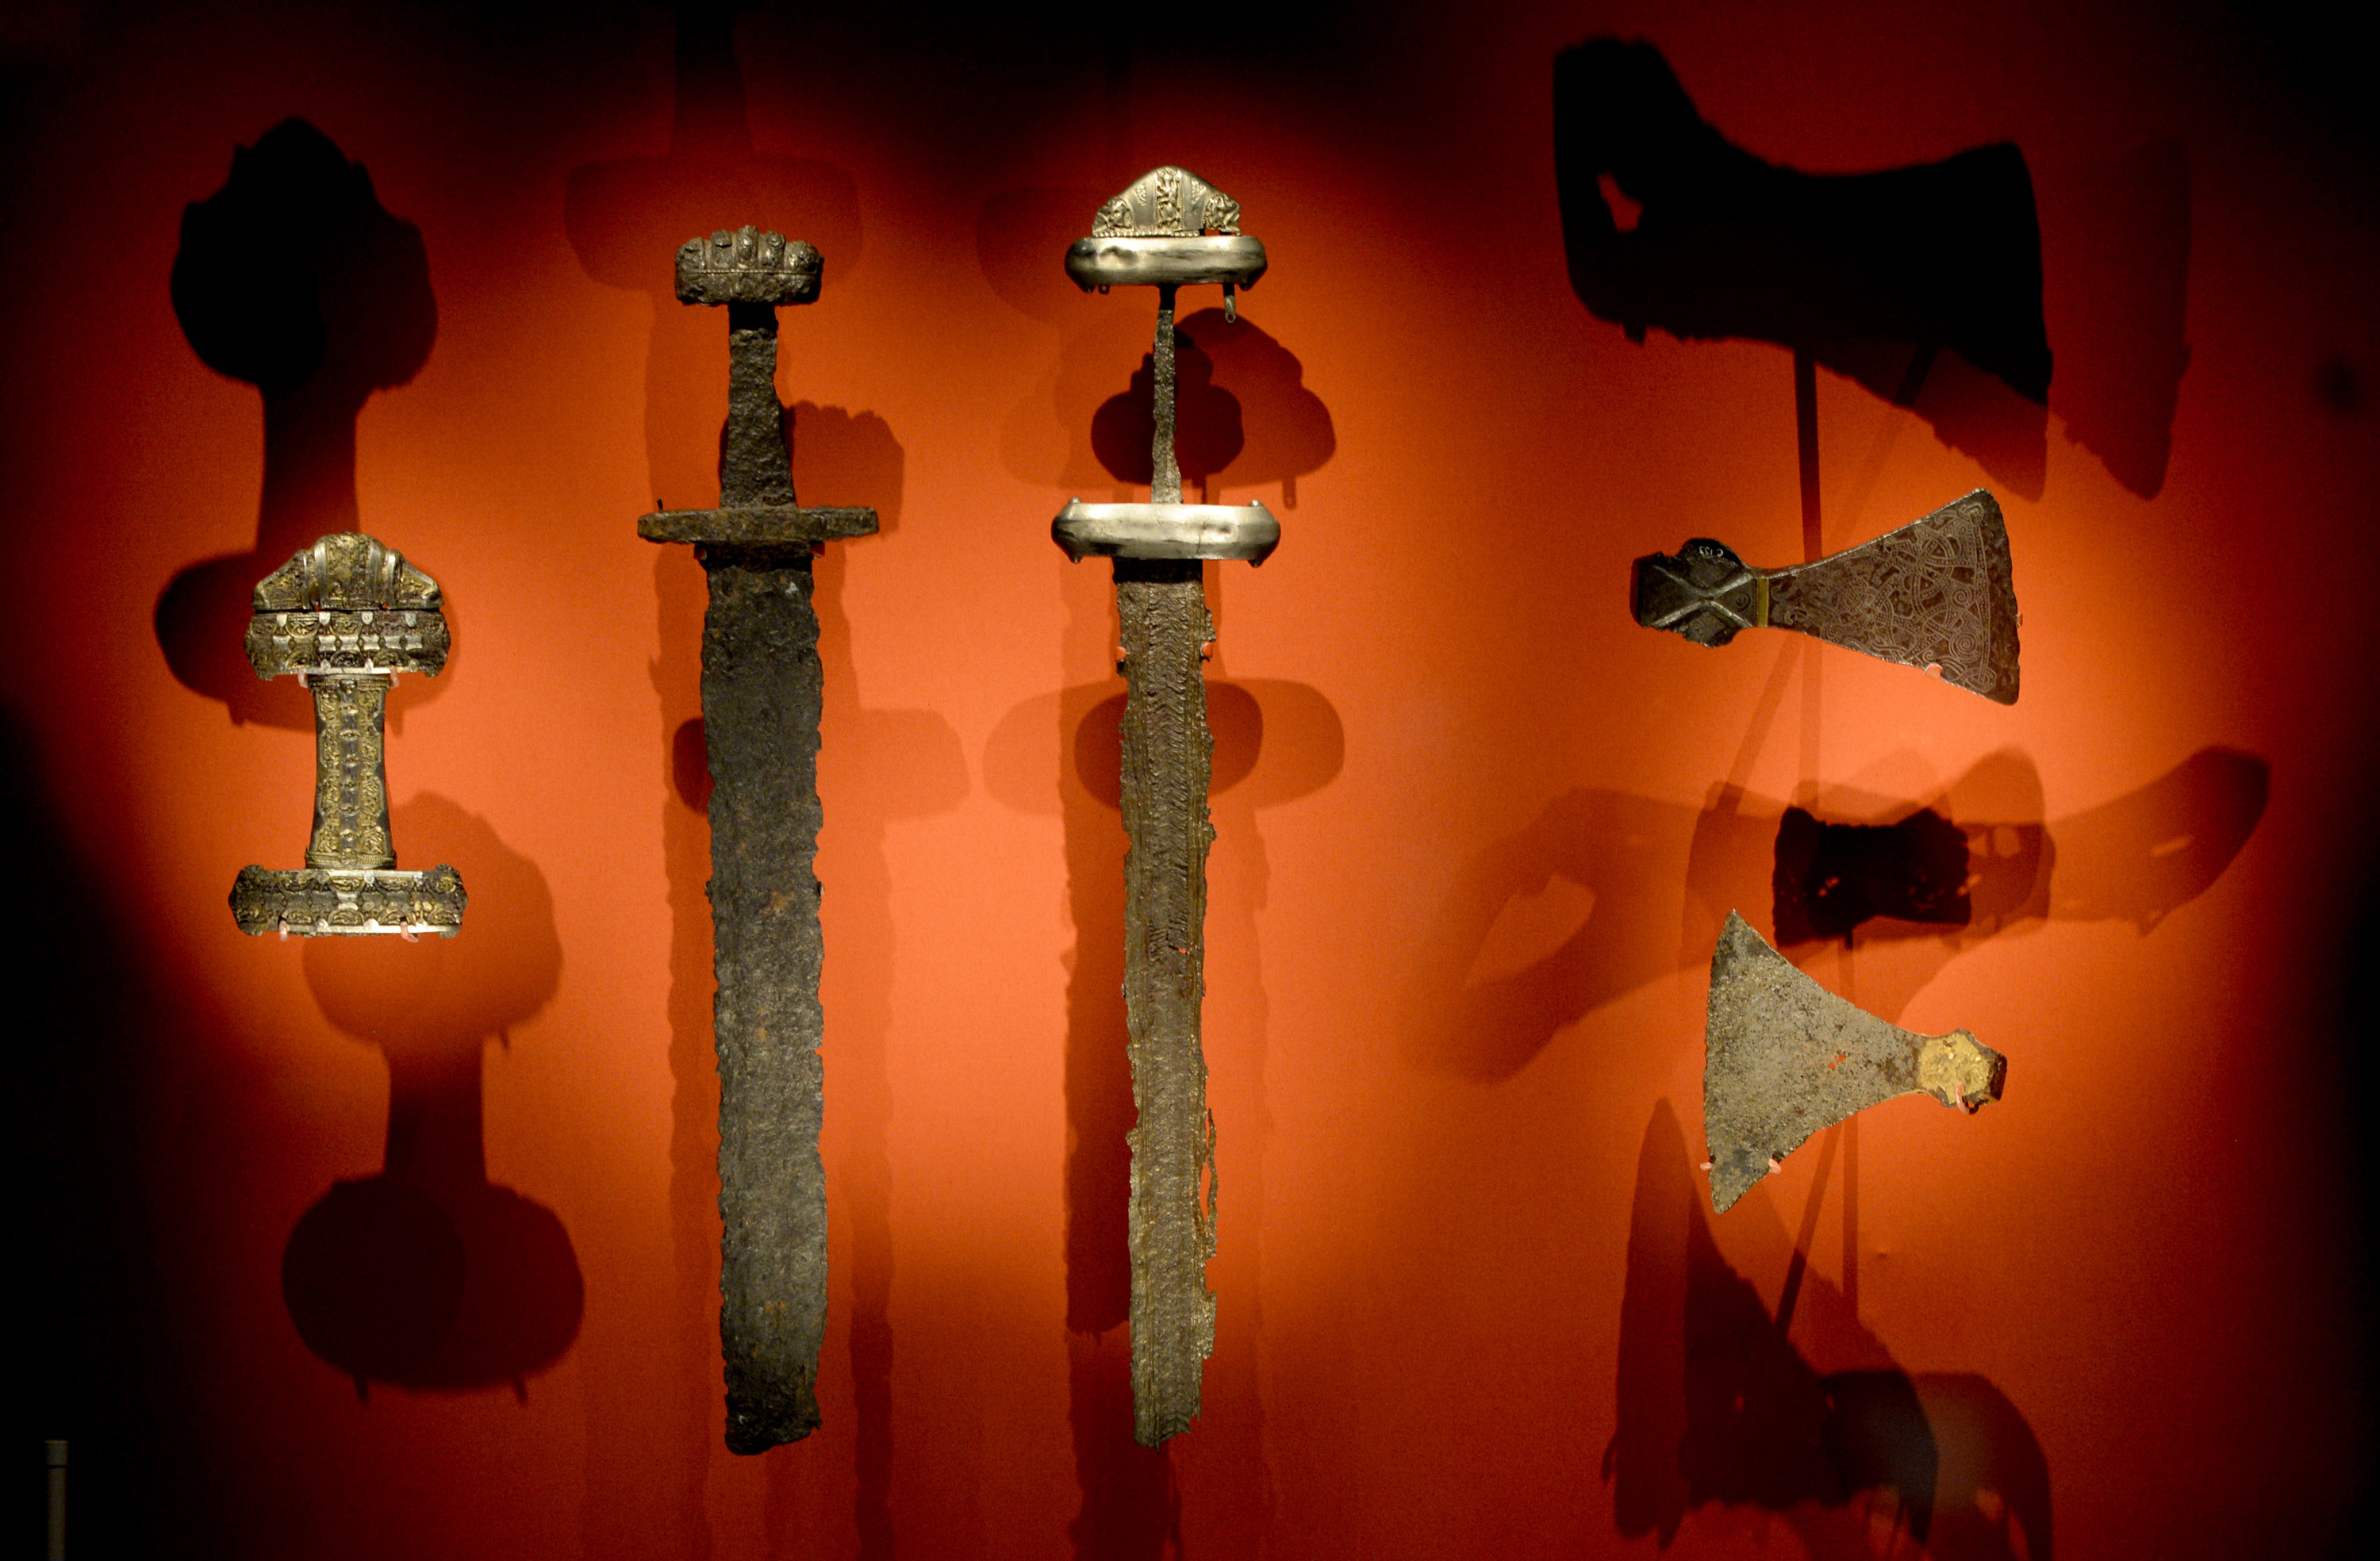 Viking swords are displayed at the British Museum in London.